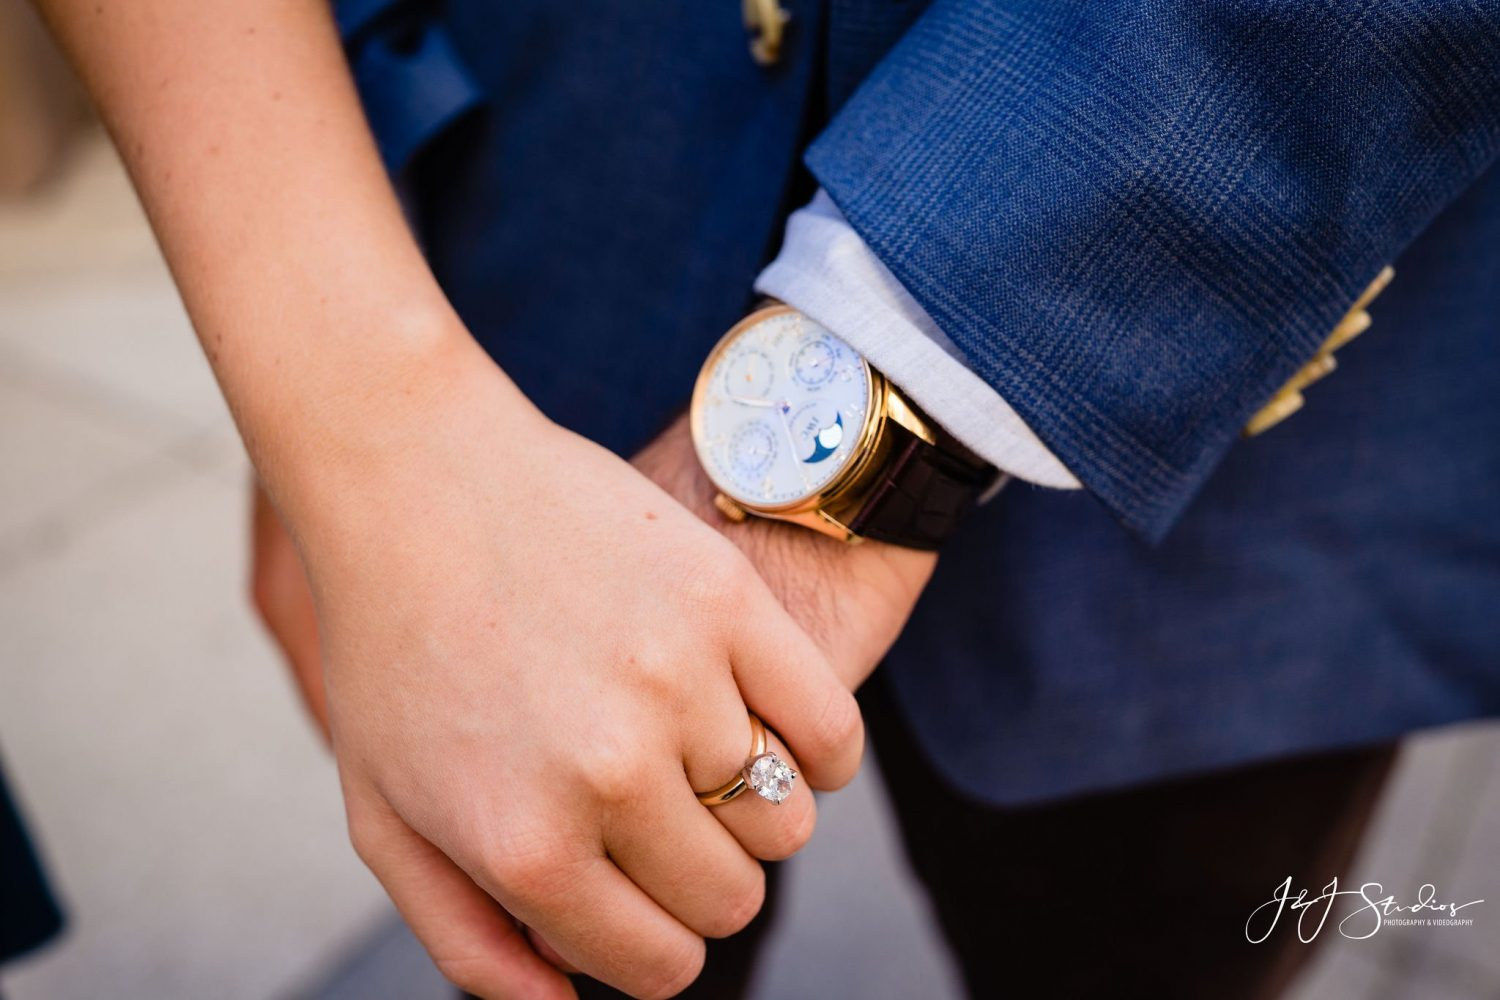 holding hands ring and nice watch